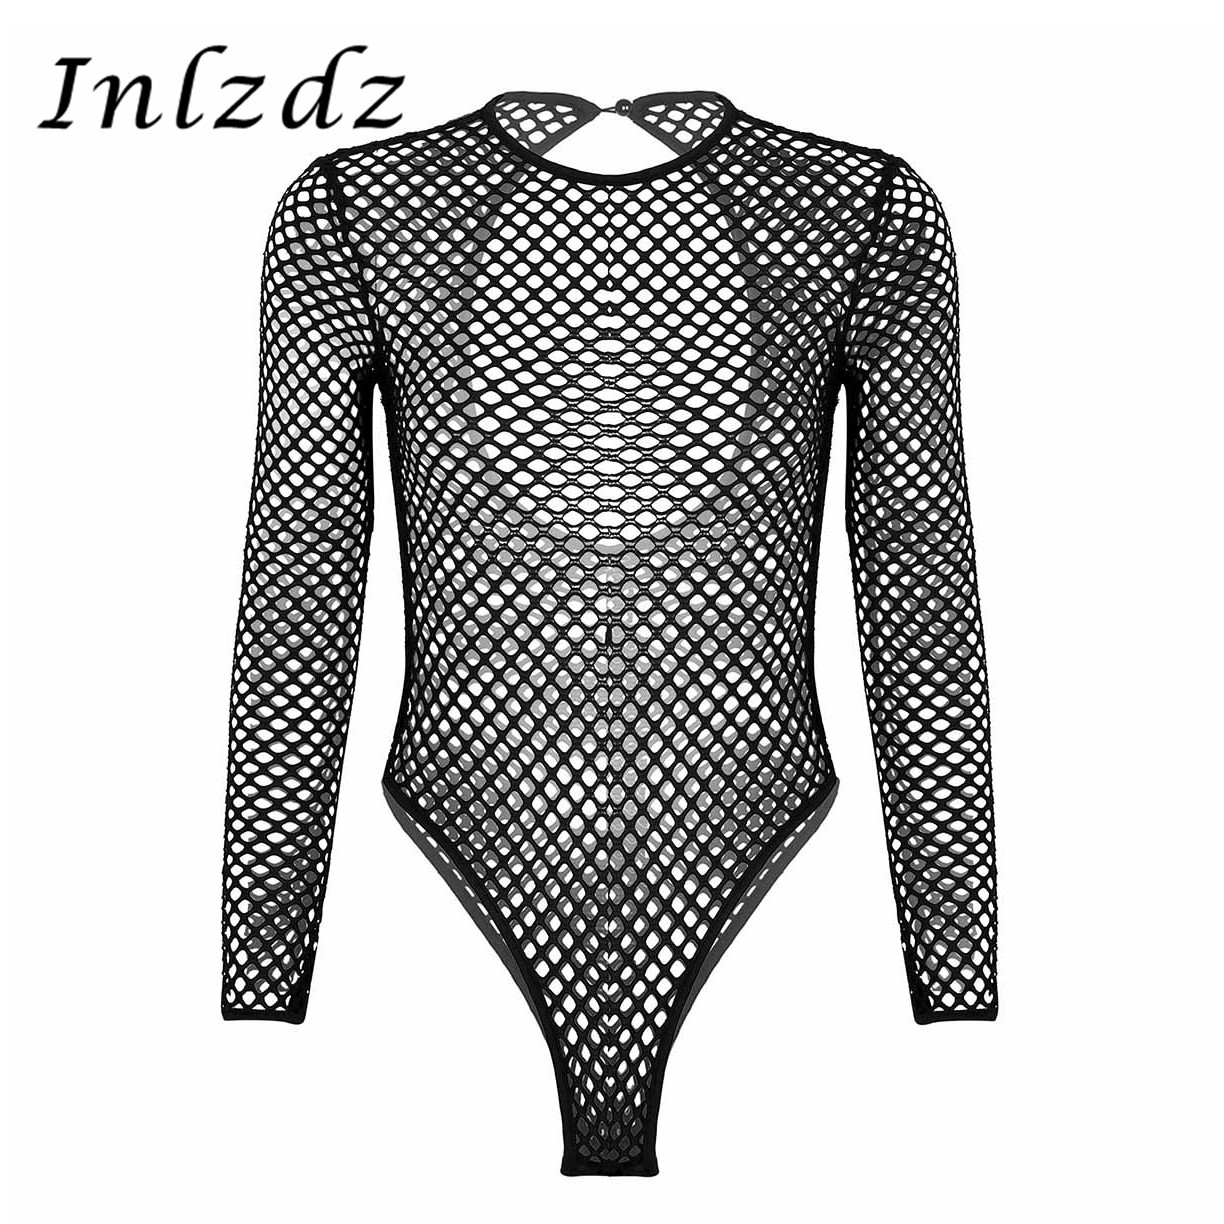 Women's Transparents Fishnet Bodysuit Sheer Lingerie Long Sleeve High Cut Tank Sex Thong Leotard Jumpsuit See ThroughBodysuit image